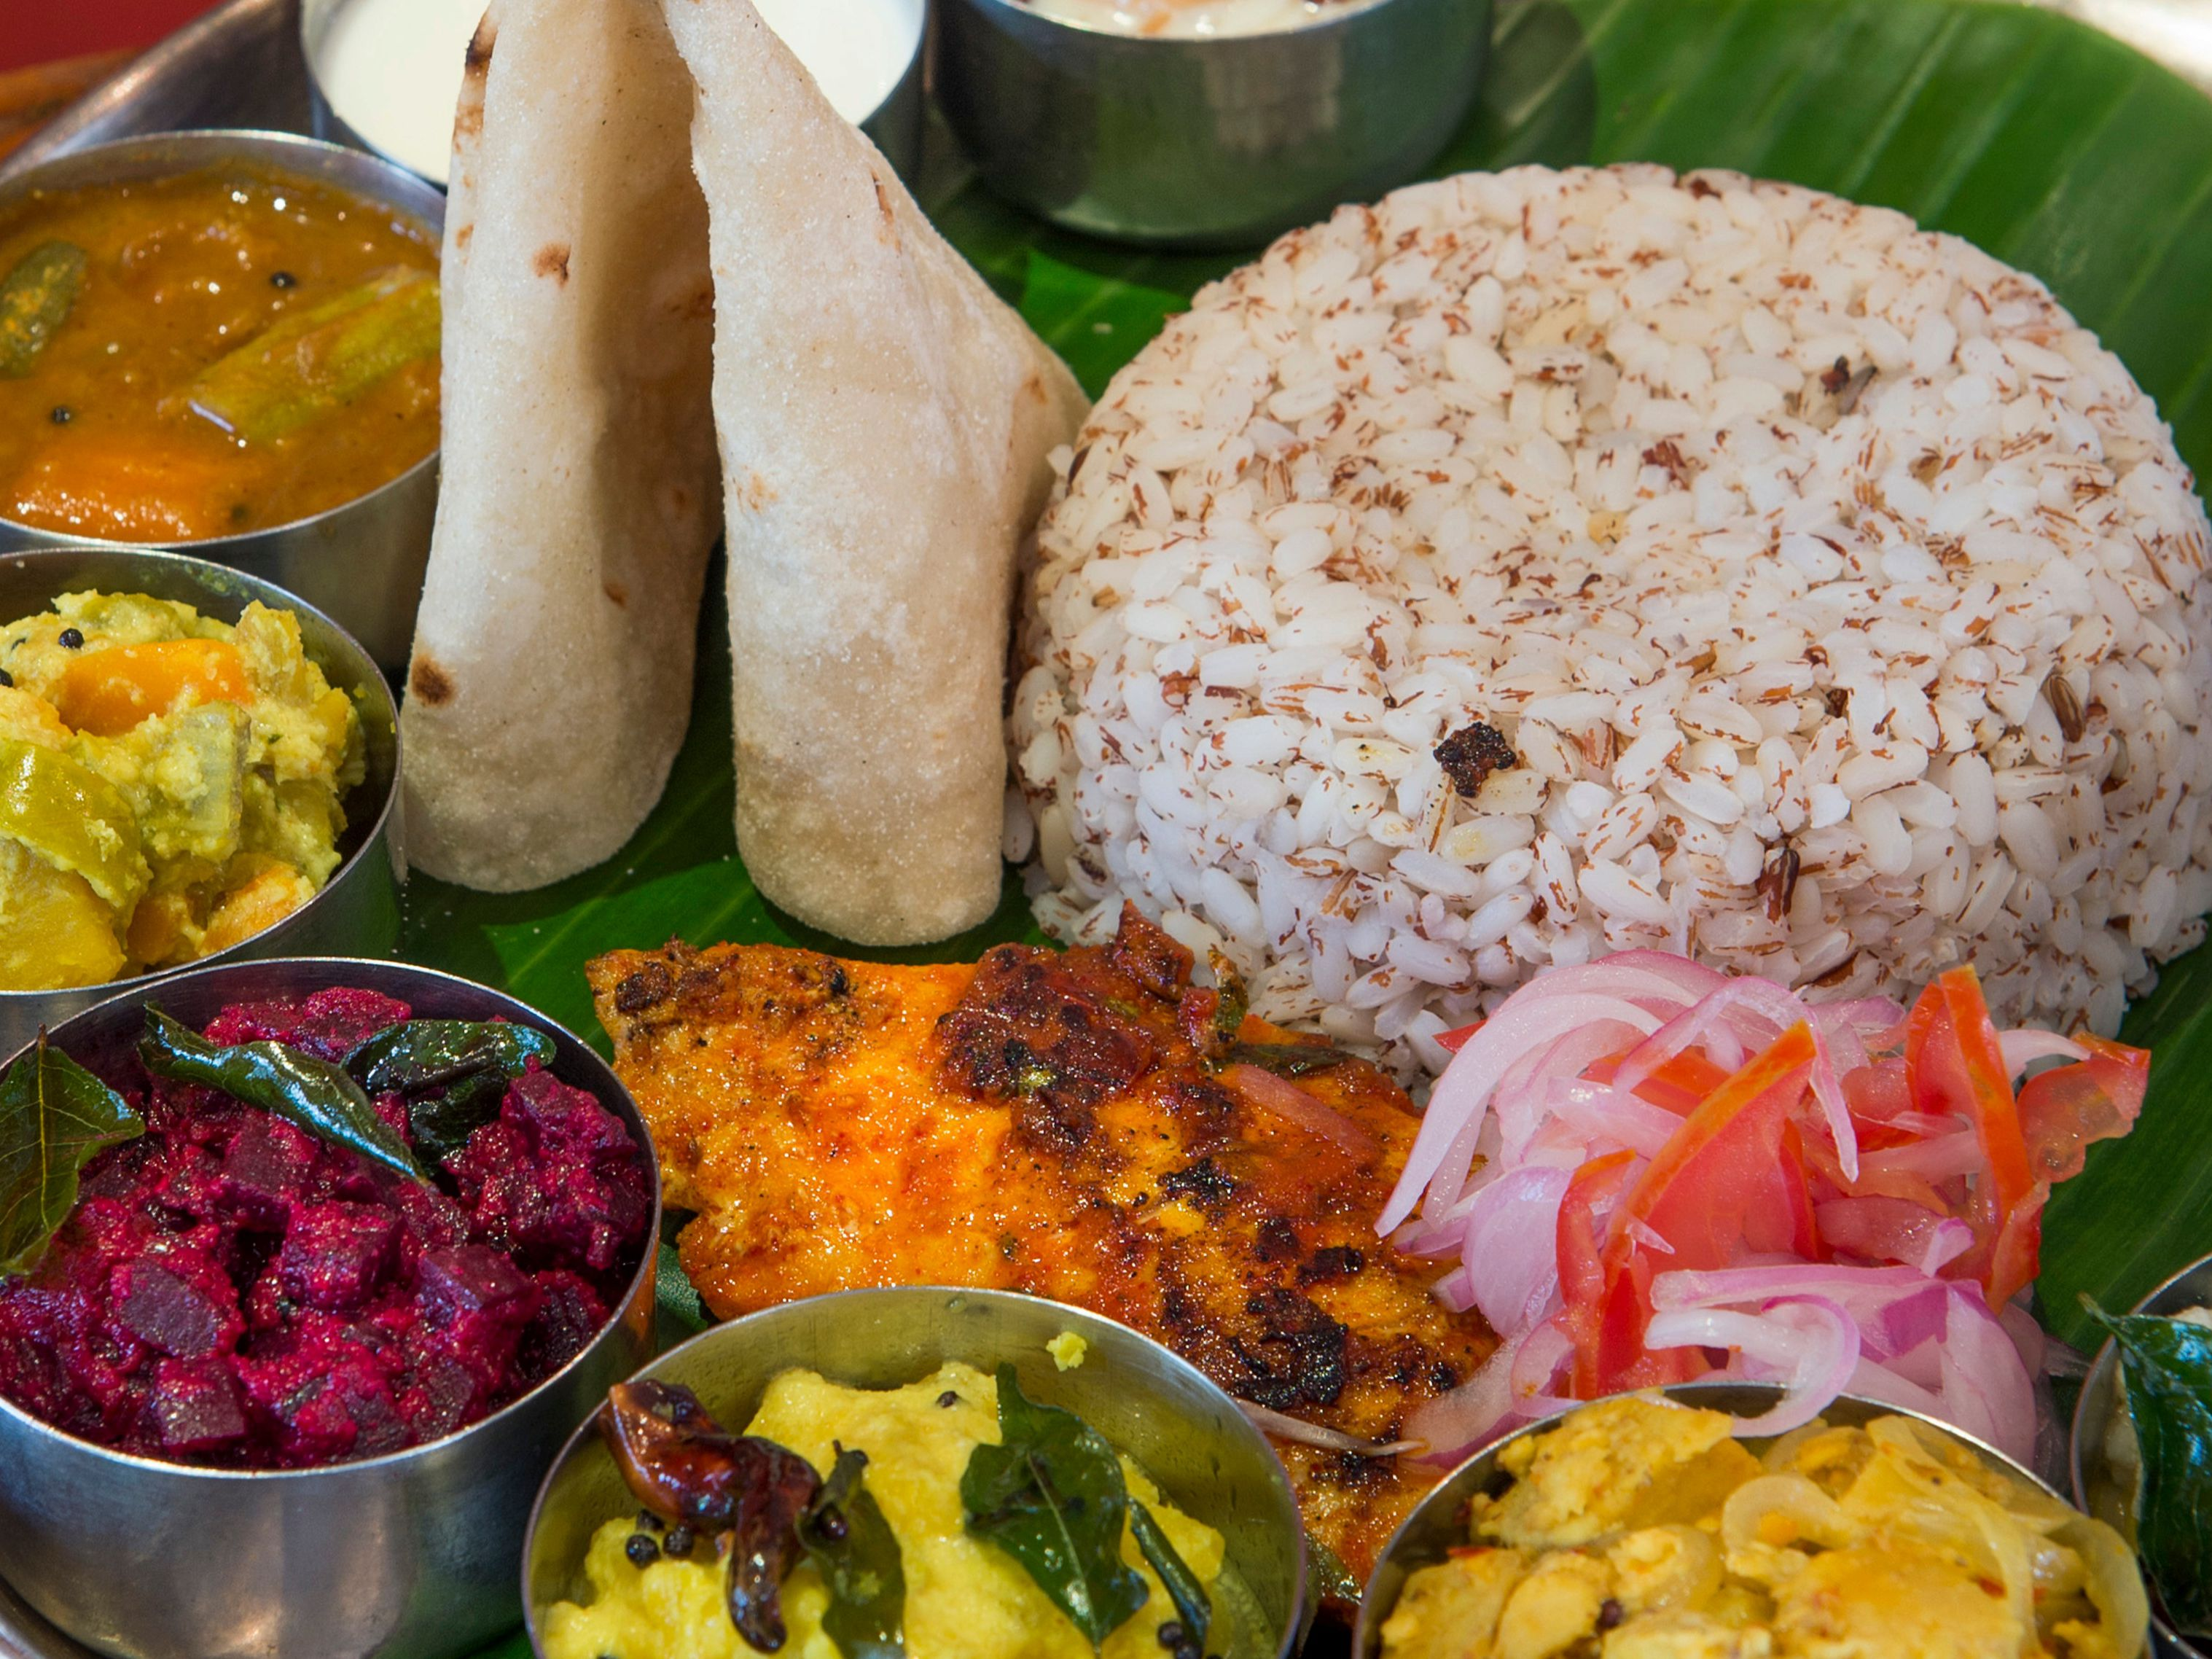 Organic spice farm tour and cooking